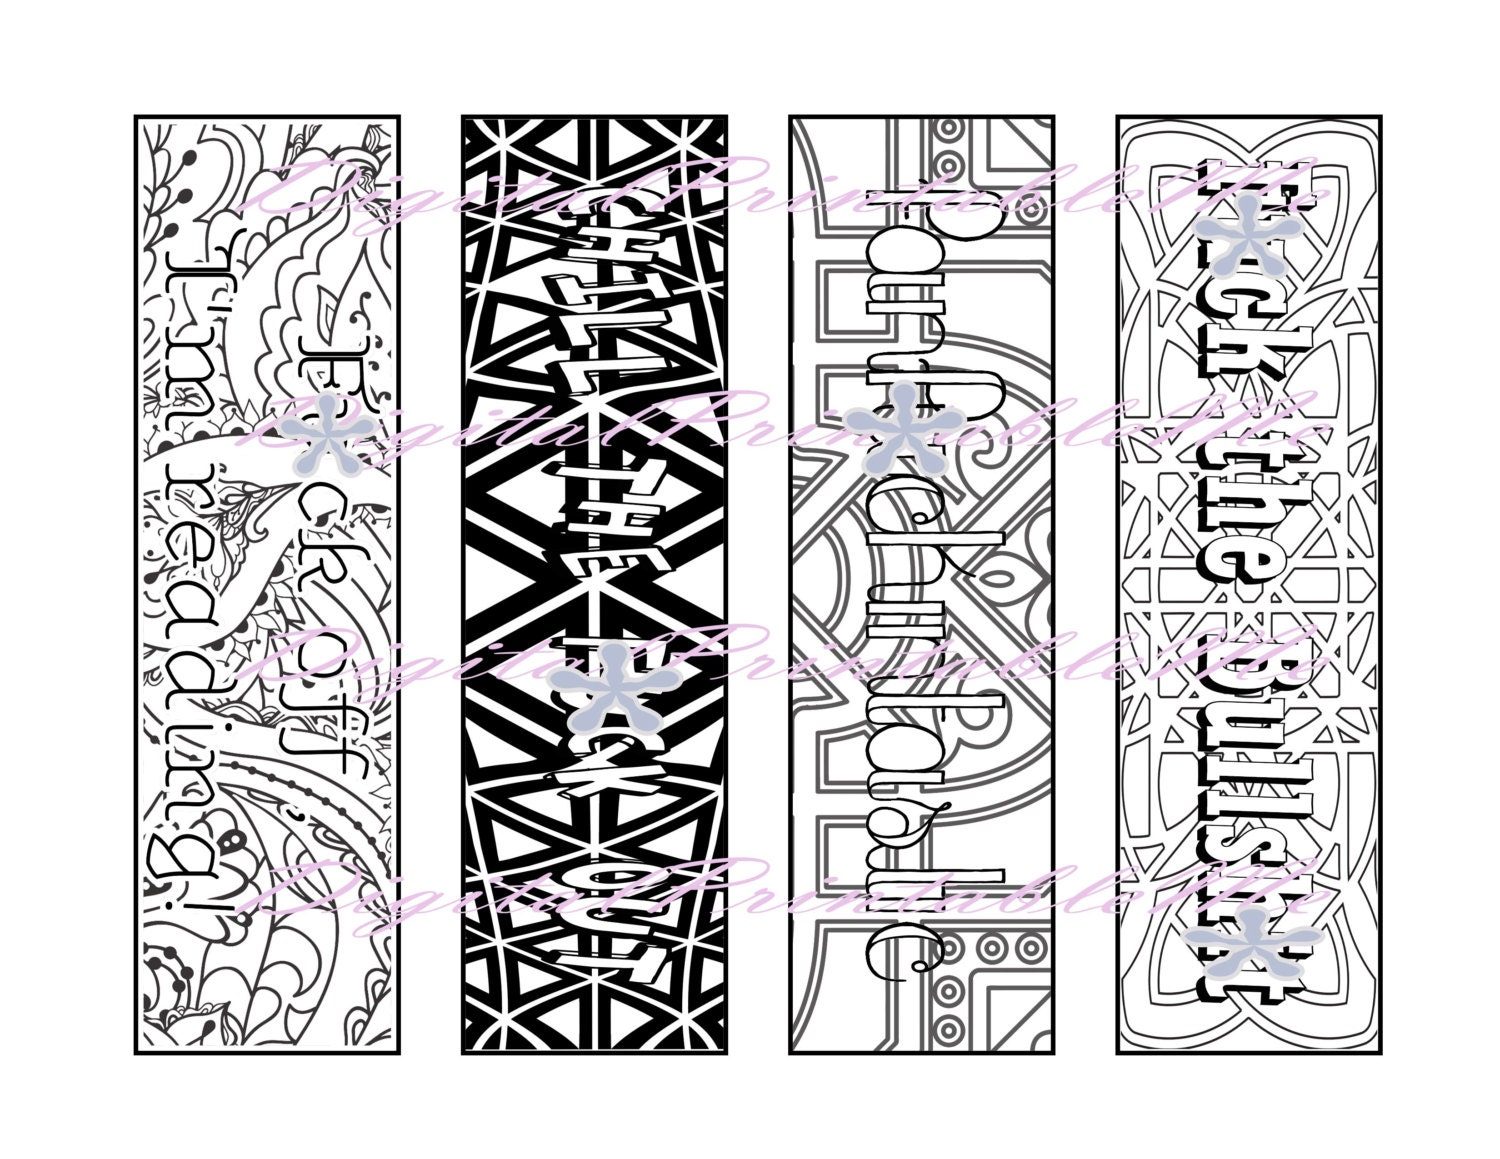 bookmarks coloring pages - printable bookmark swear coloring page book mark mature adult